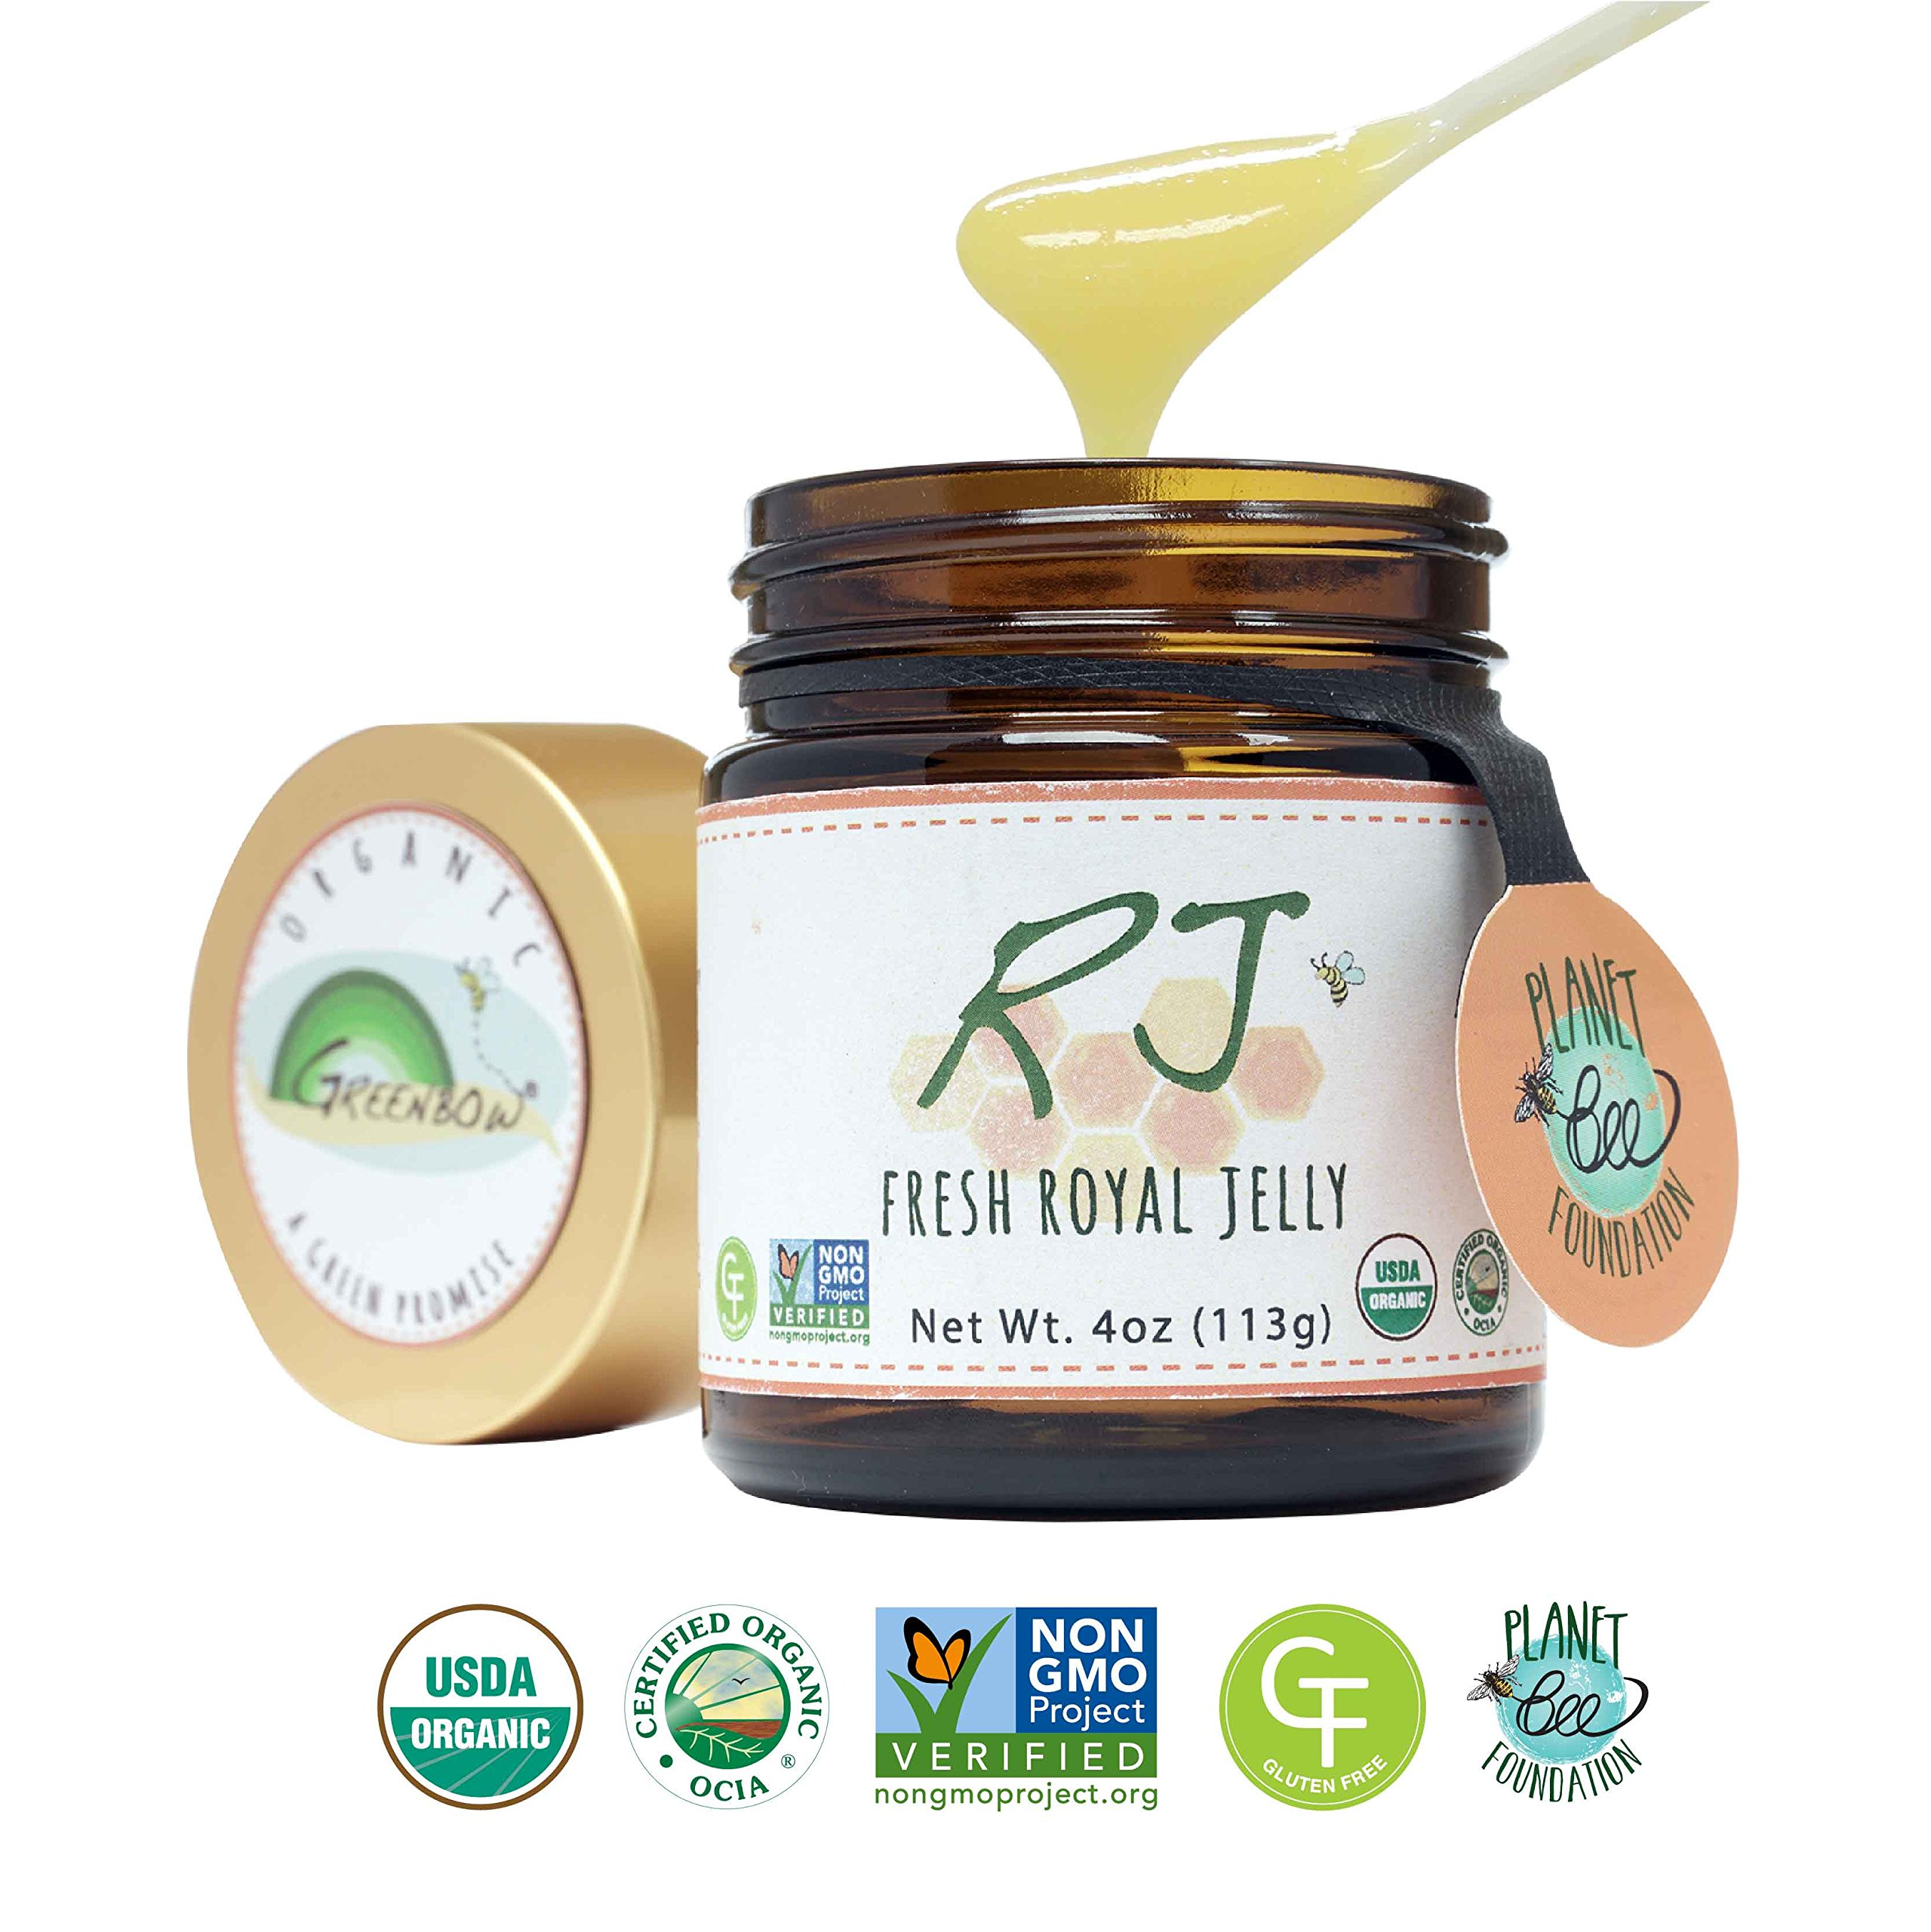 GREENBOW Organic Fresh Royal Jelly - 100% USDA Certified Organic, Pure, Gluten Free, Non-GMO Royal Jelly - One of the Most Nutrition Packed Diet Supplements - Highest Quality Royal Jelly - (113g) by Greenbow